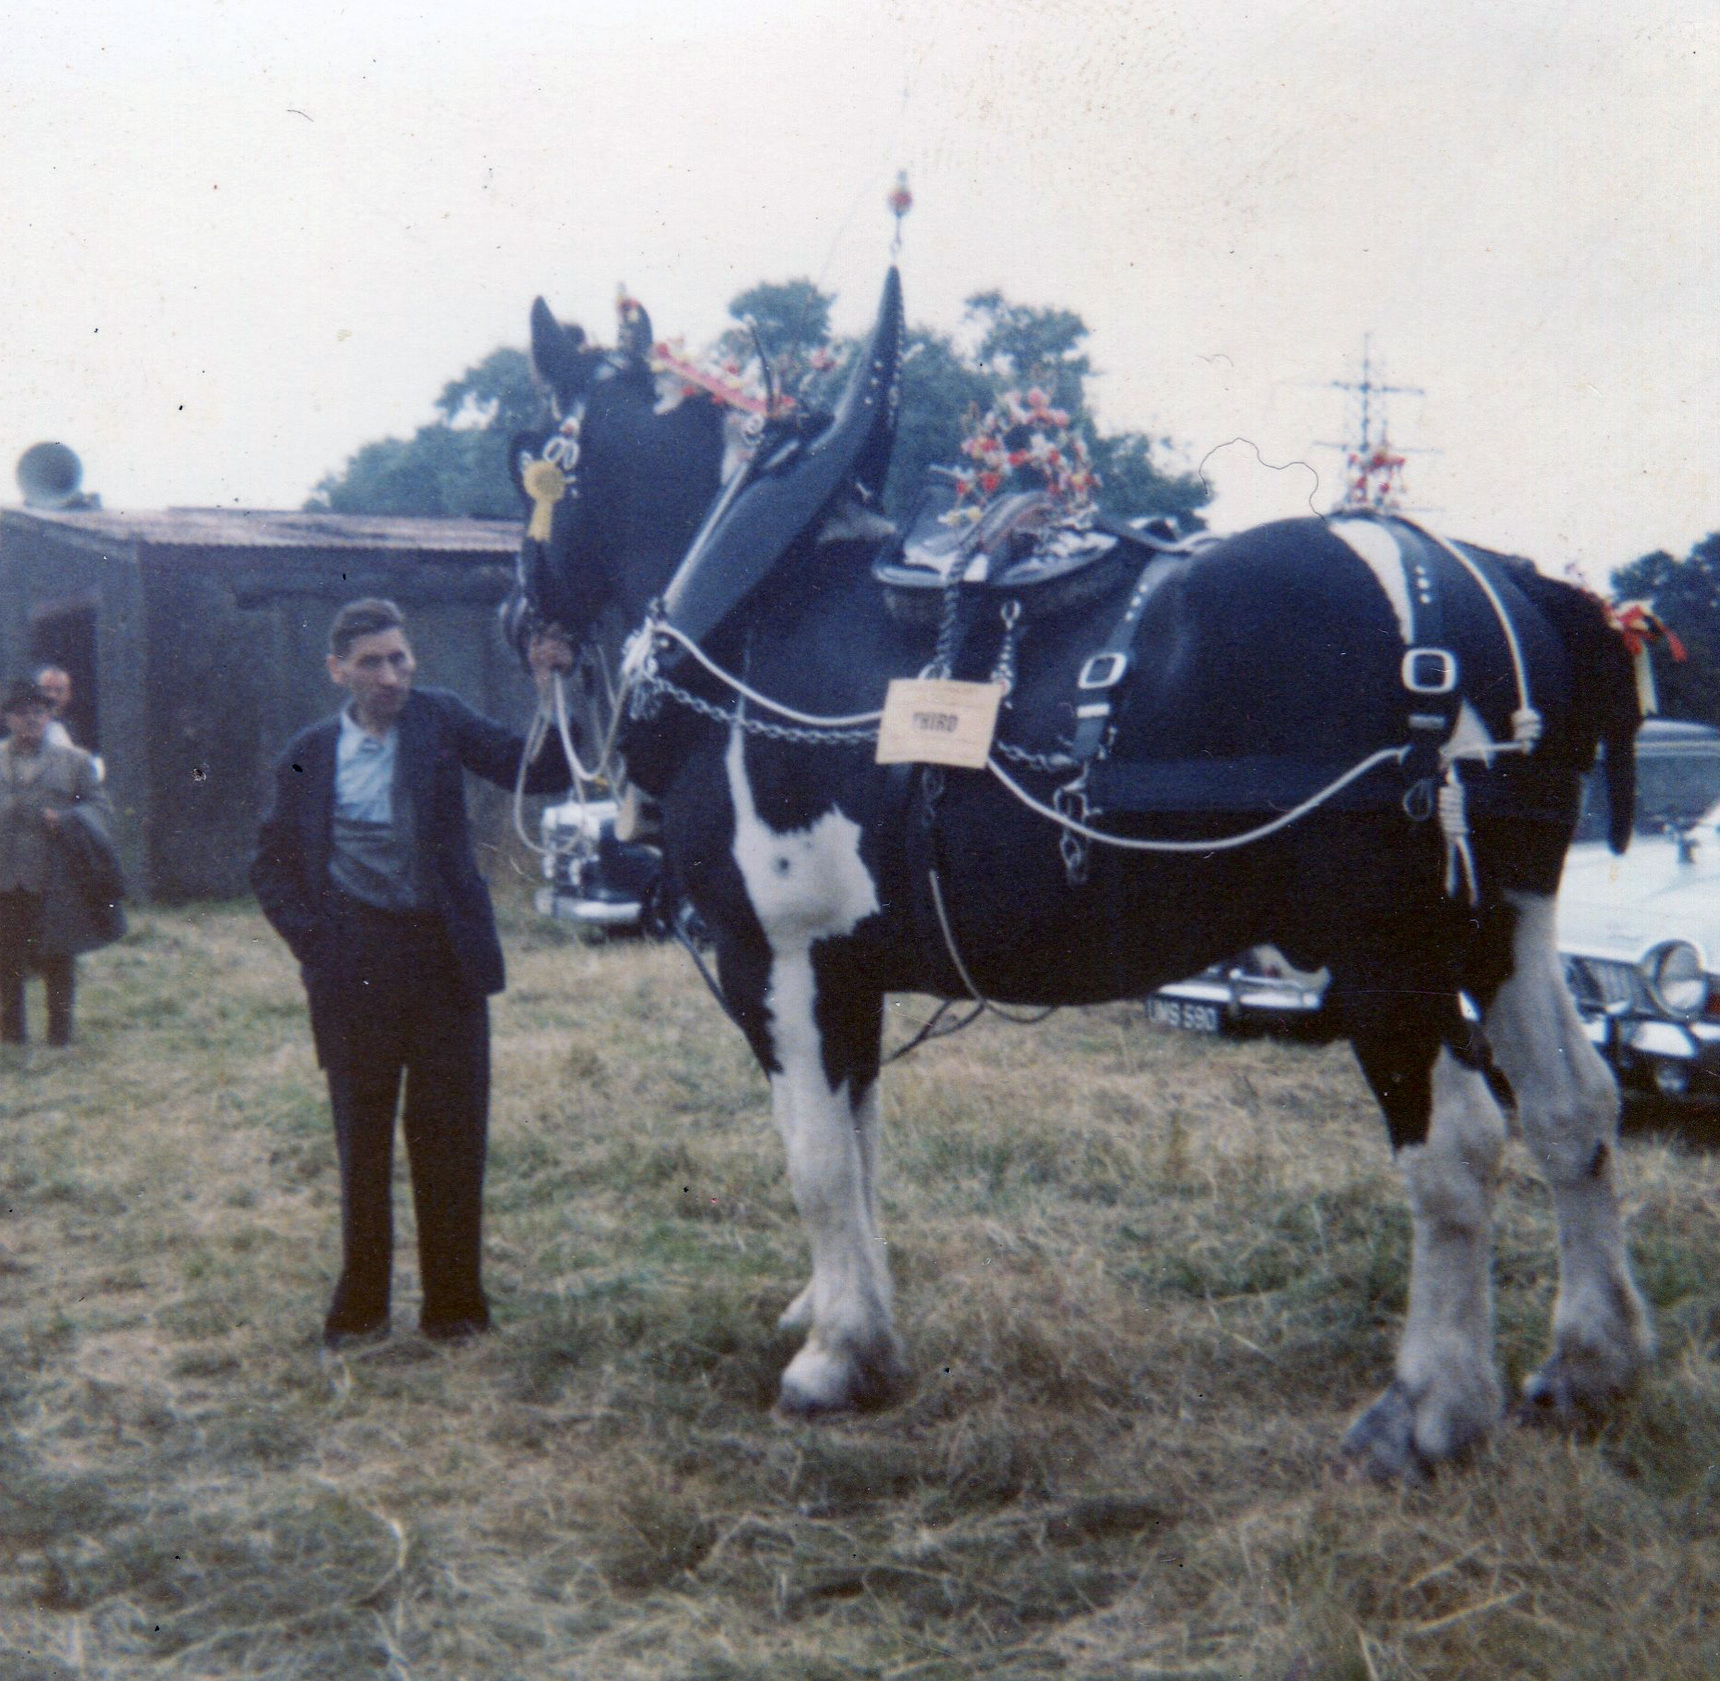 Third Prize Clydesdale Horse With Handler At Leith Pageant Parade 1960s